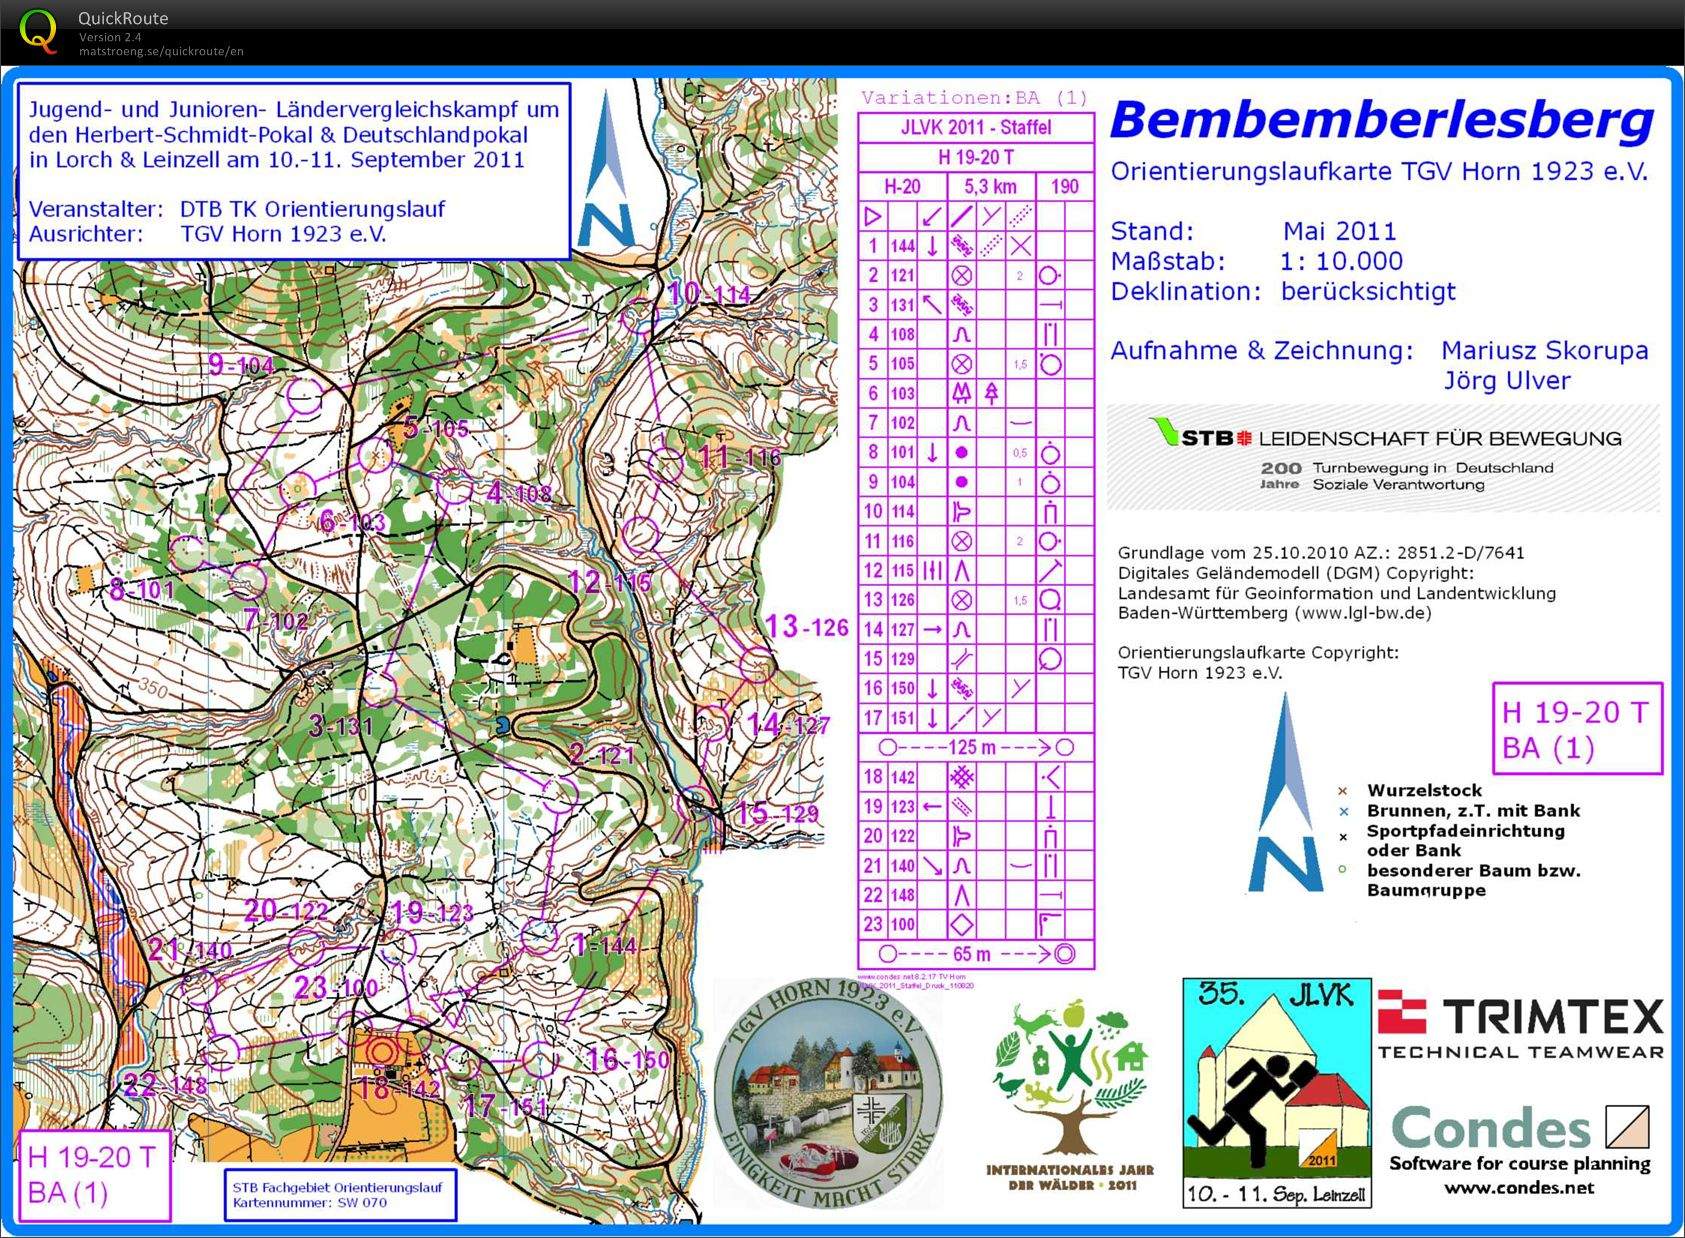 Training Bemberlesberg (2011 JLVK-Relay) (01/04/2012)